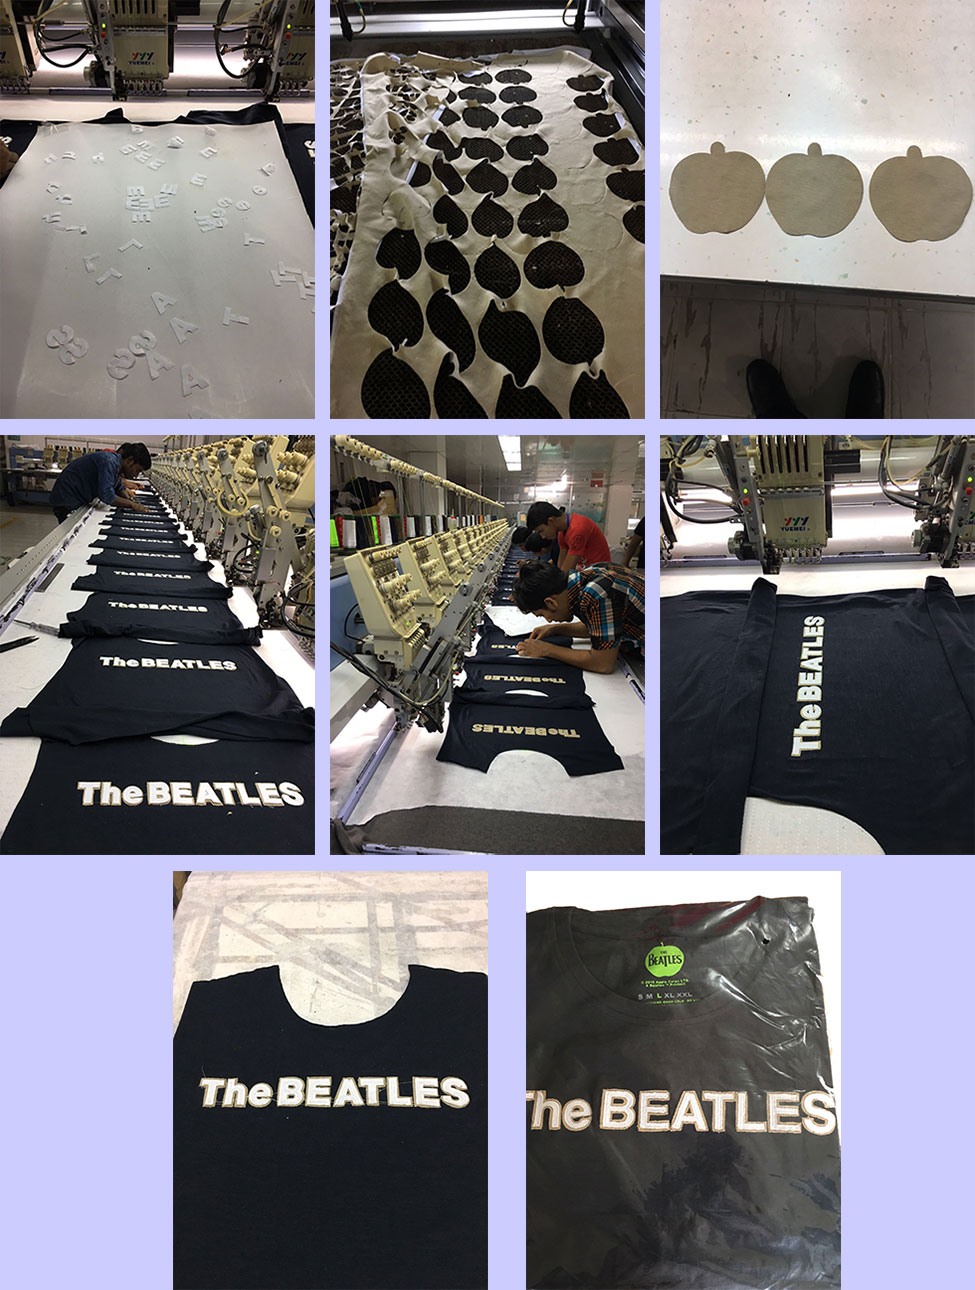 Showing how the applique tees are manufactured